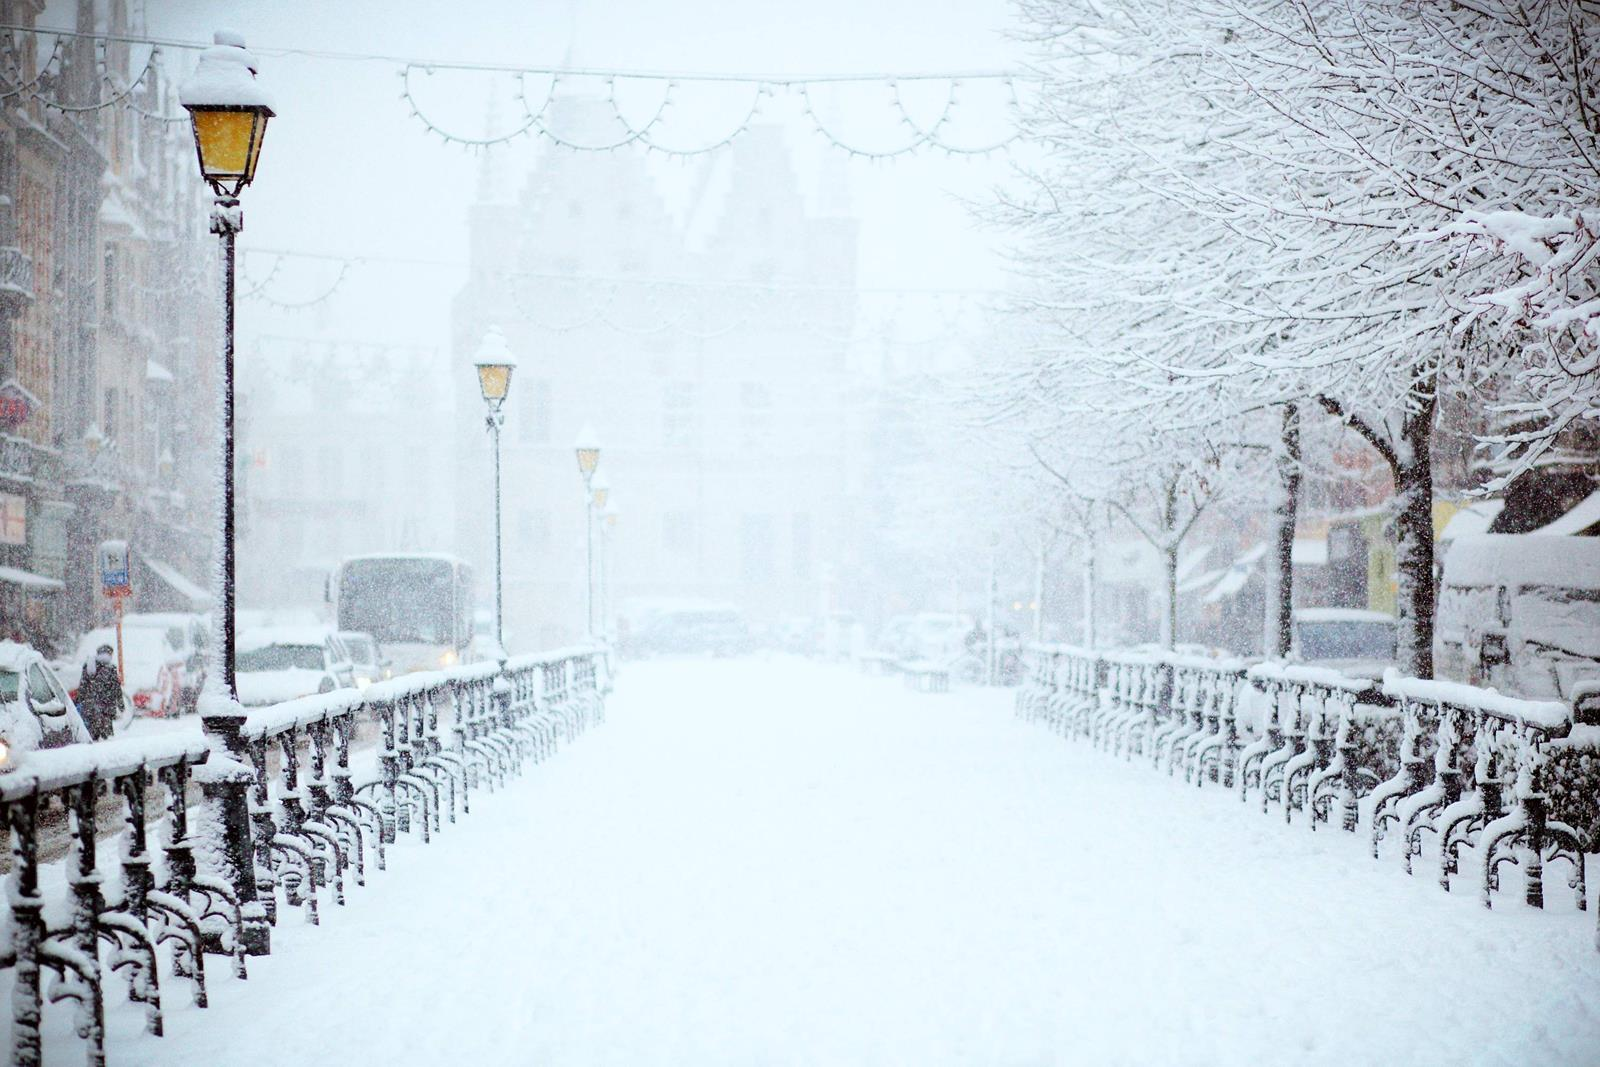 Top 6 Student Destinations to Visit in the Winter